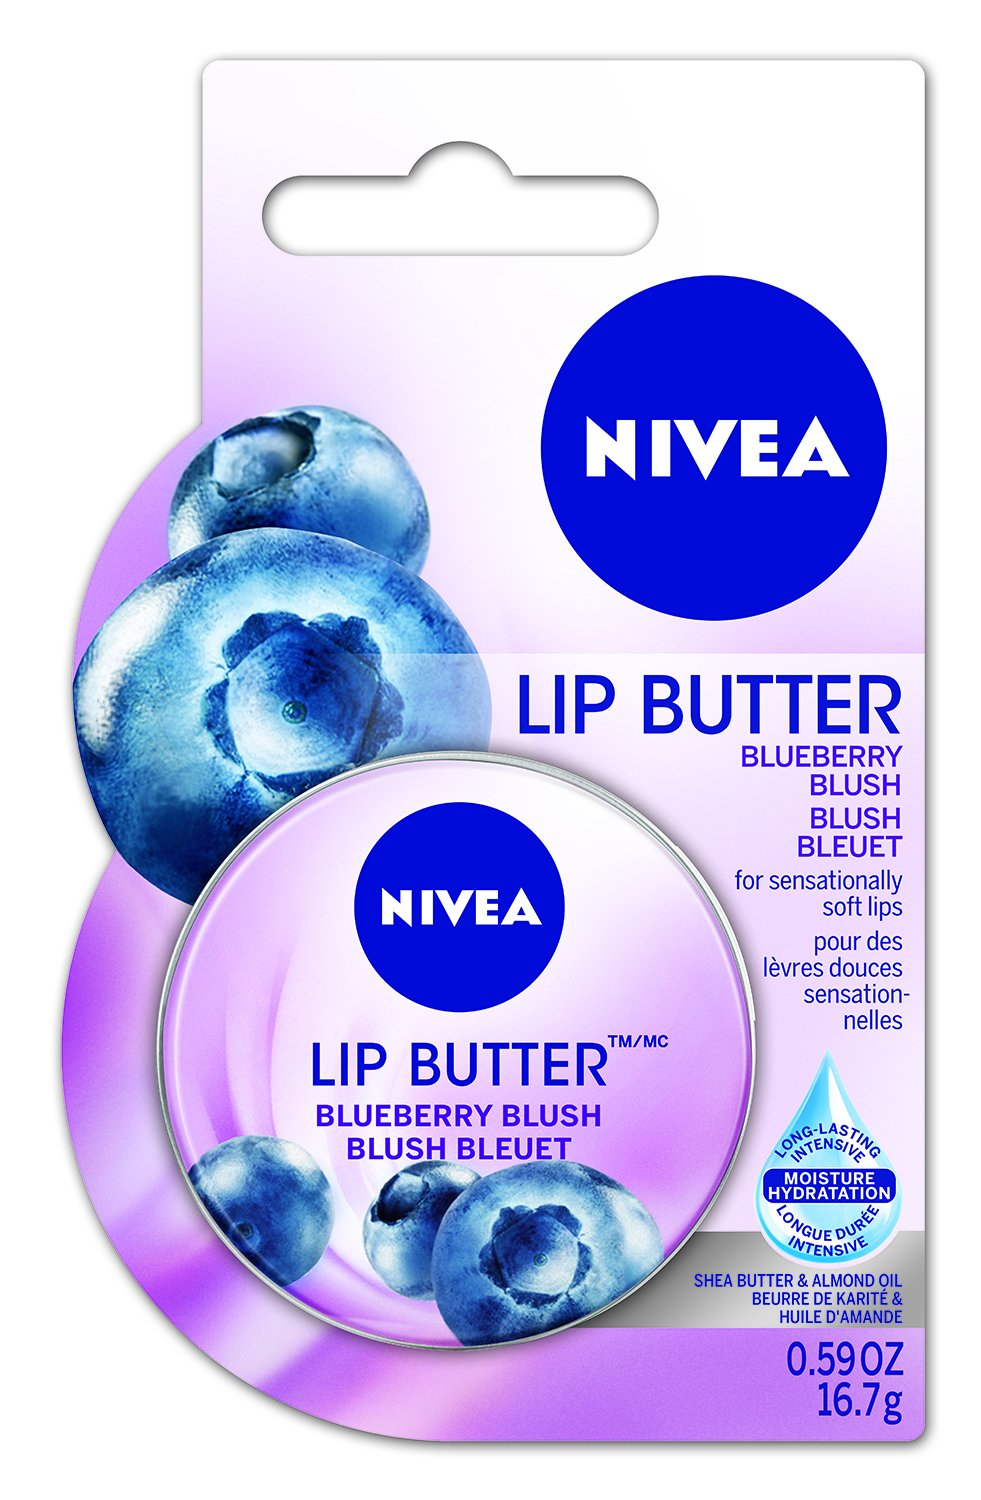 NIVEA Lip Butter Blueberry Blush, 16.7g 56594007789